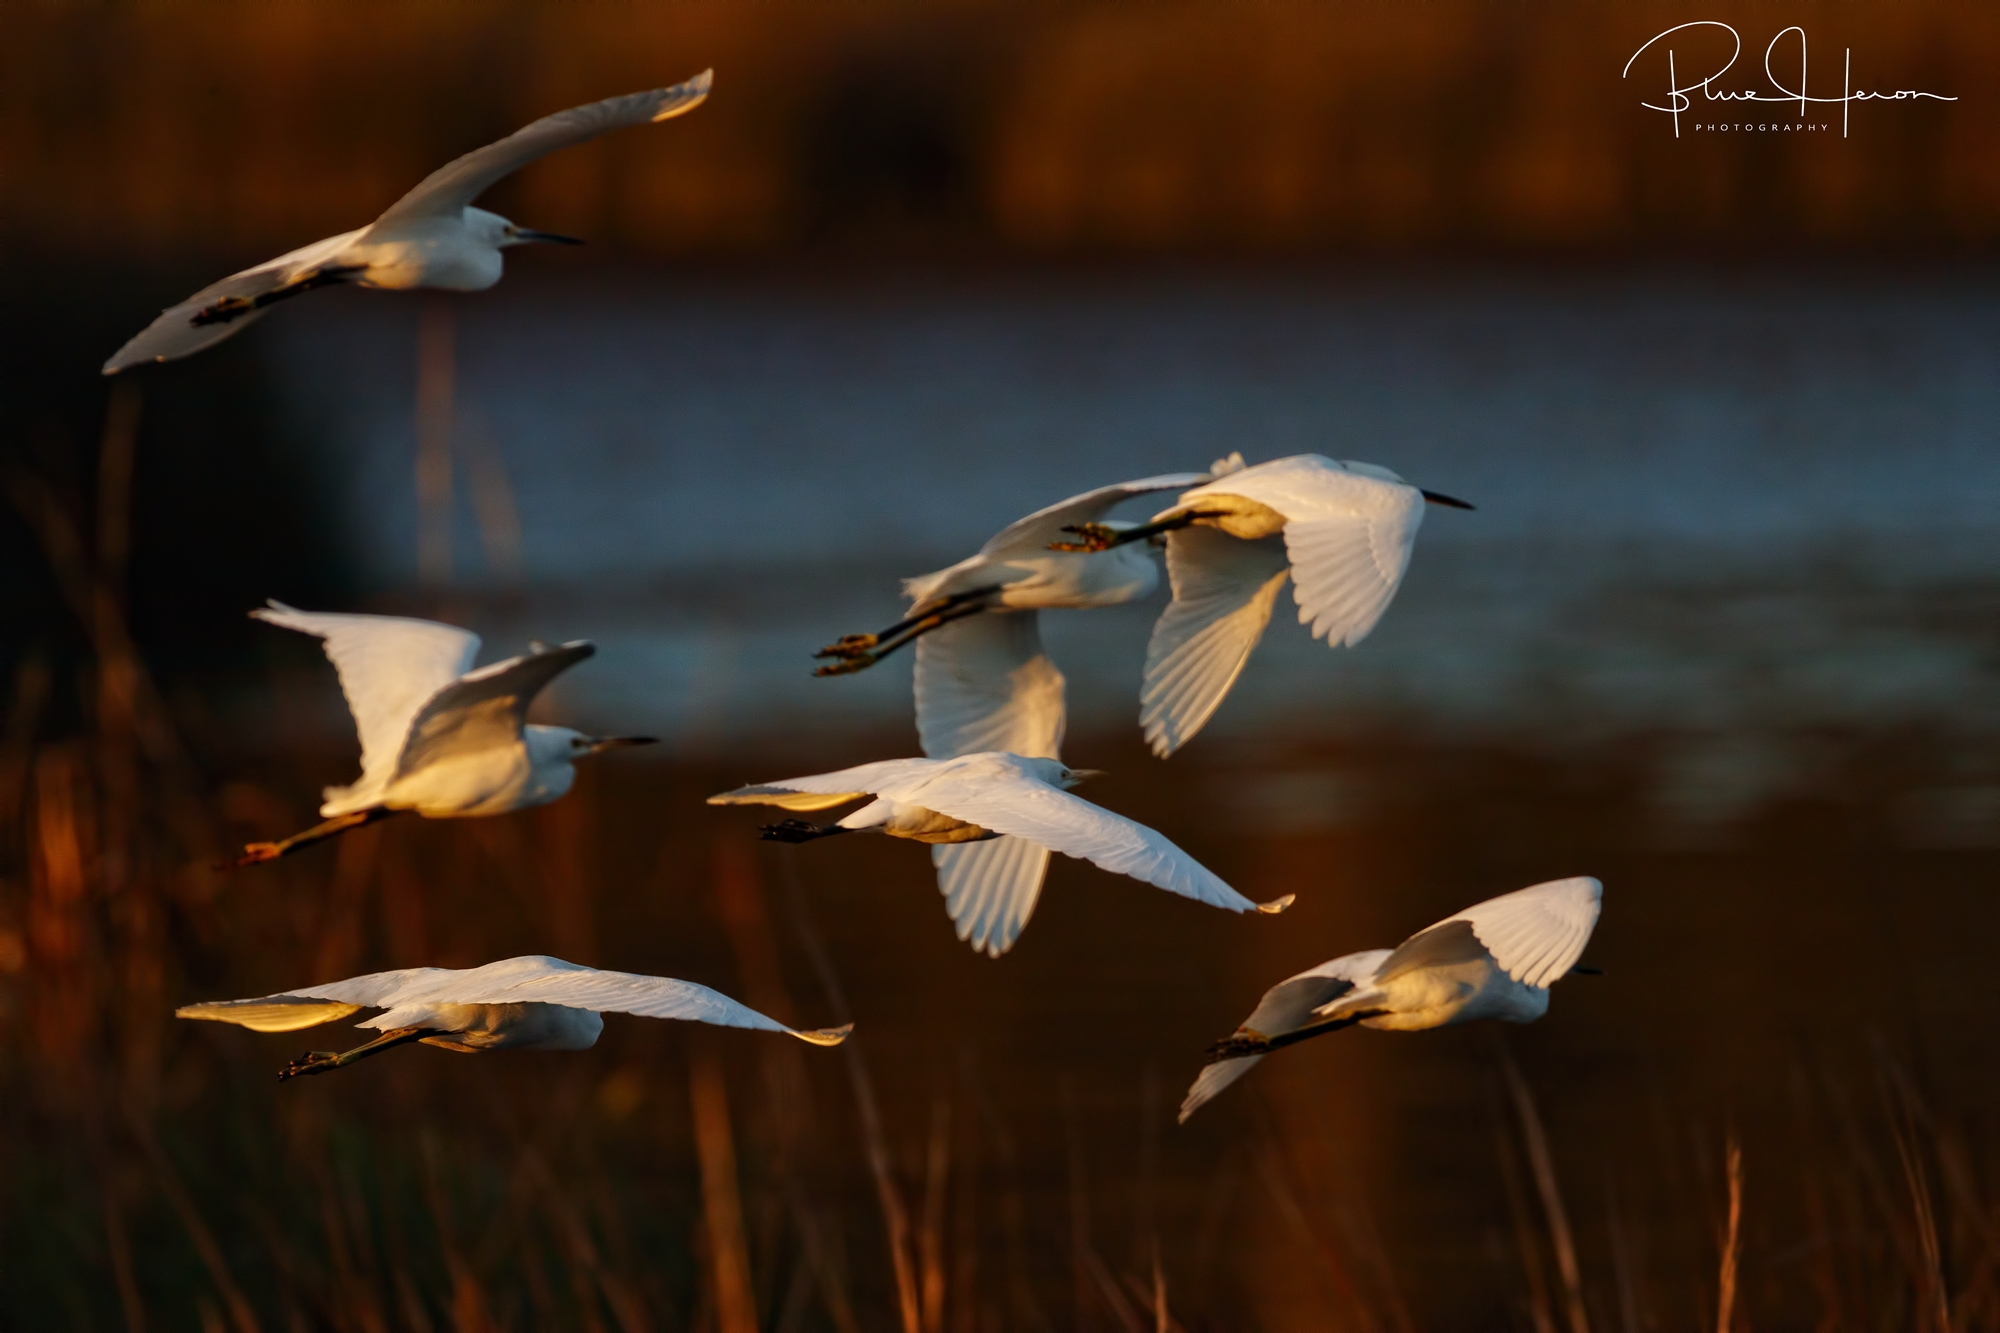 A snowy flurry of Snowy Egrets descend on the marsh..